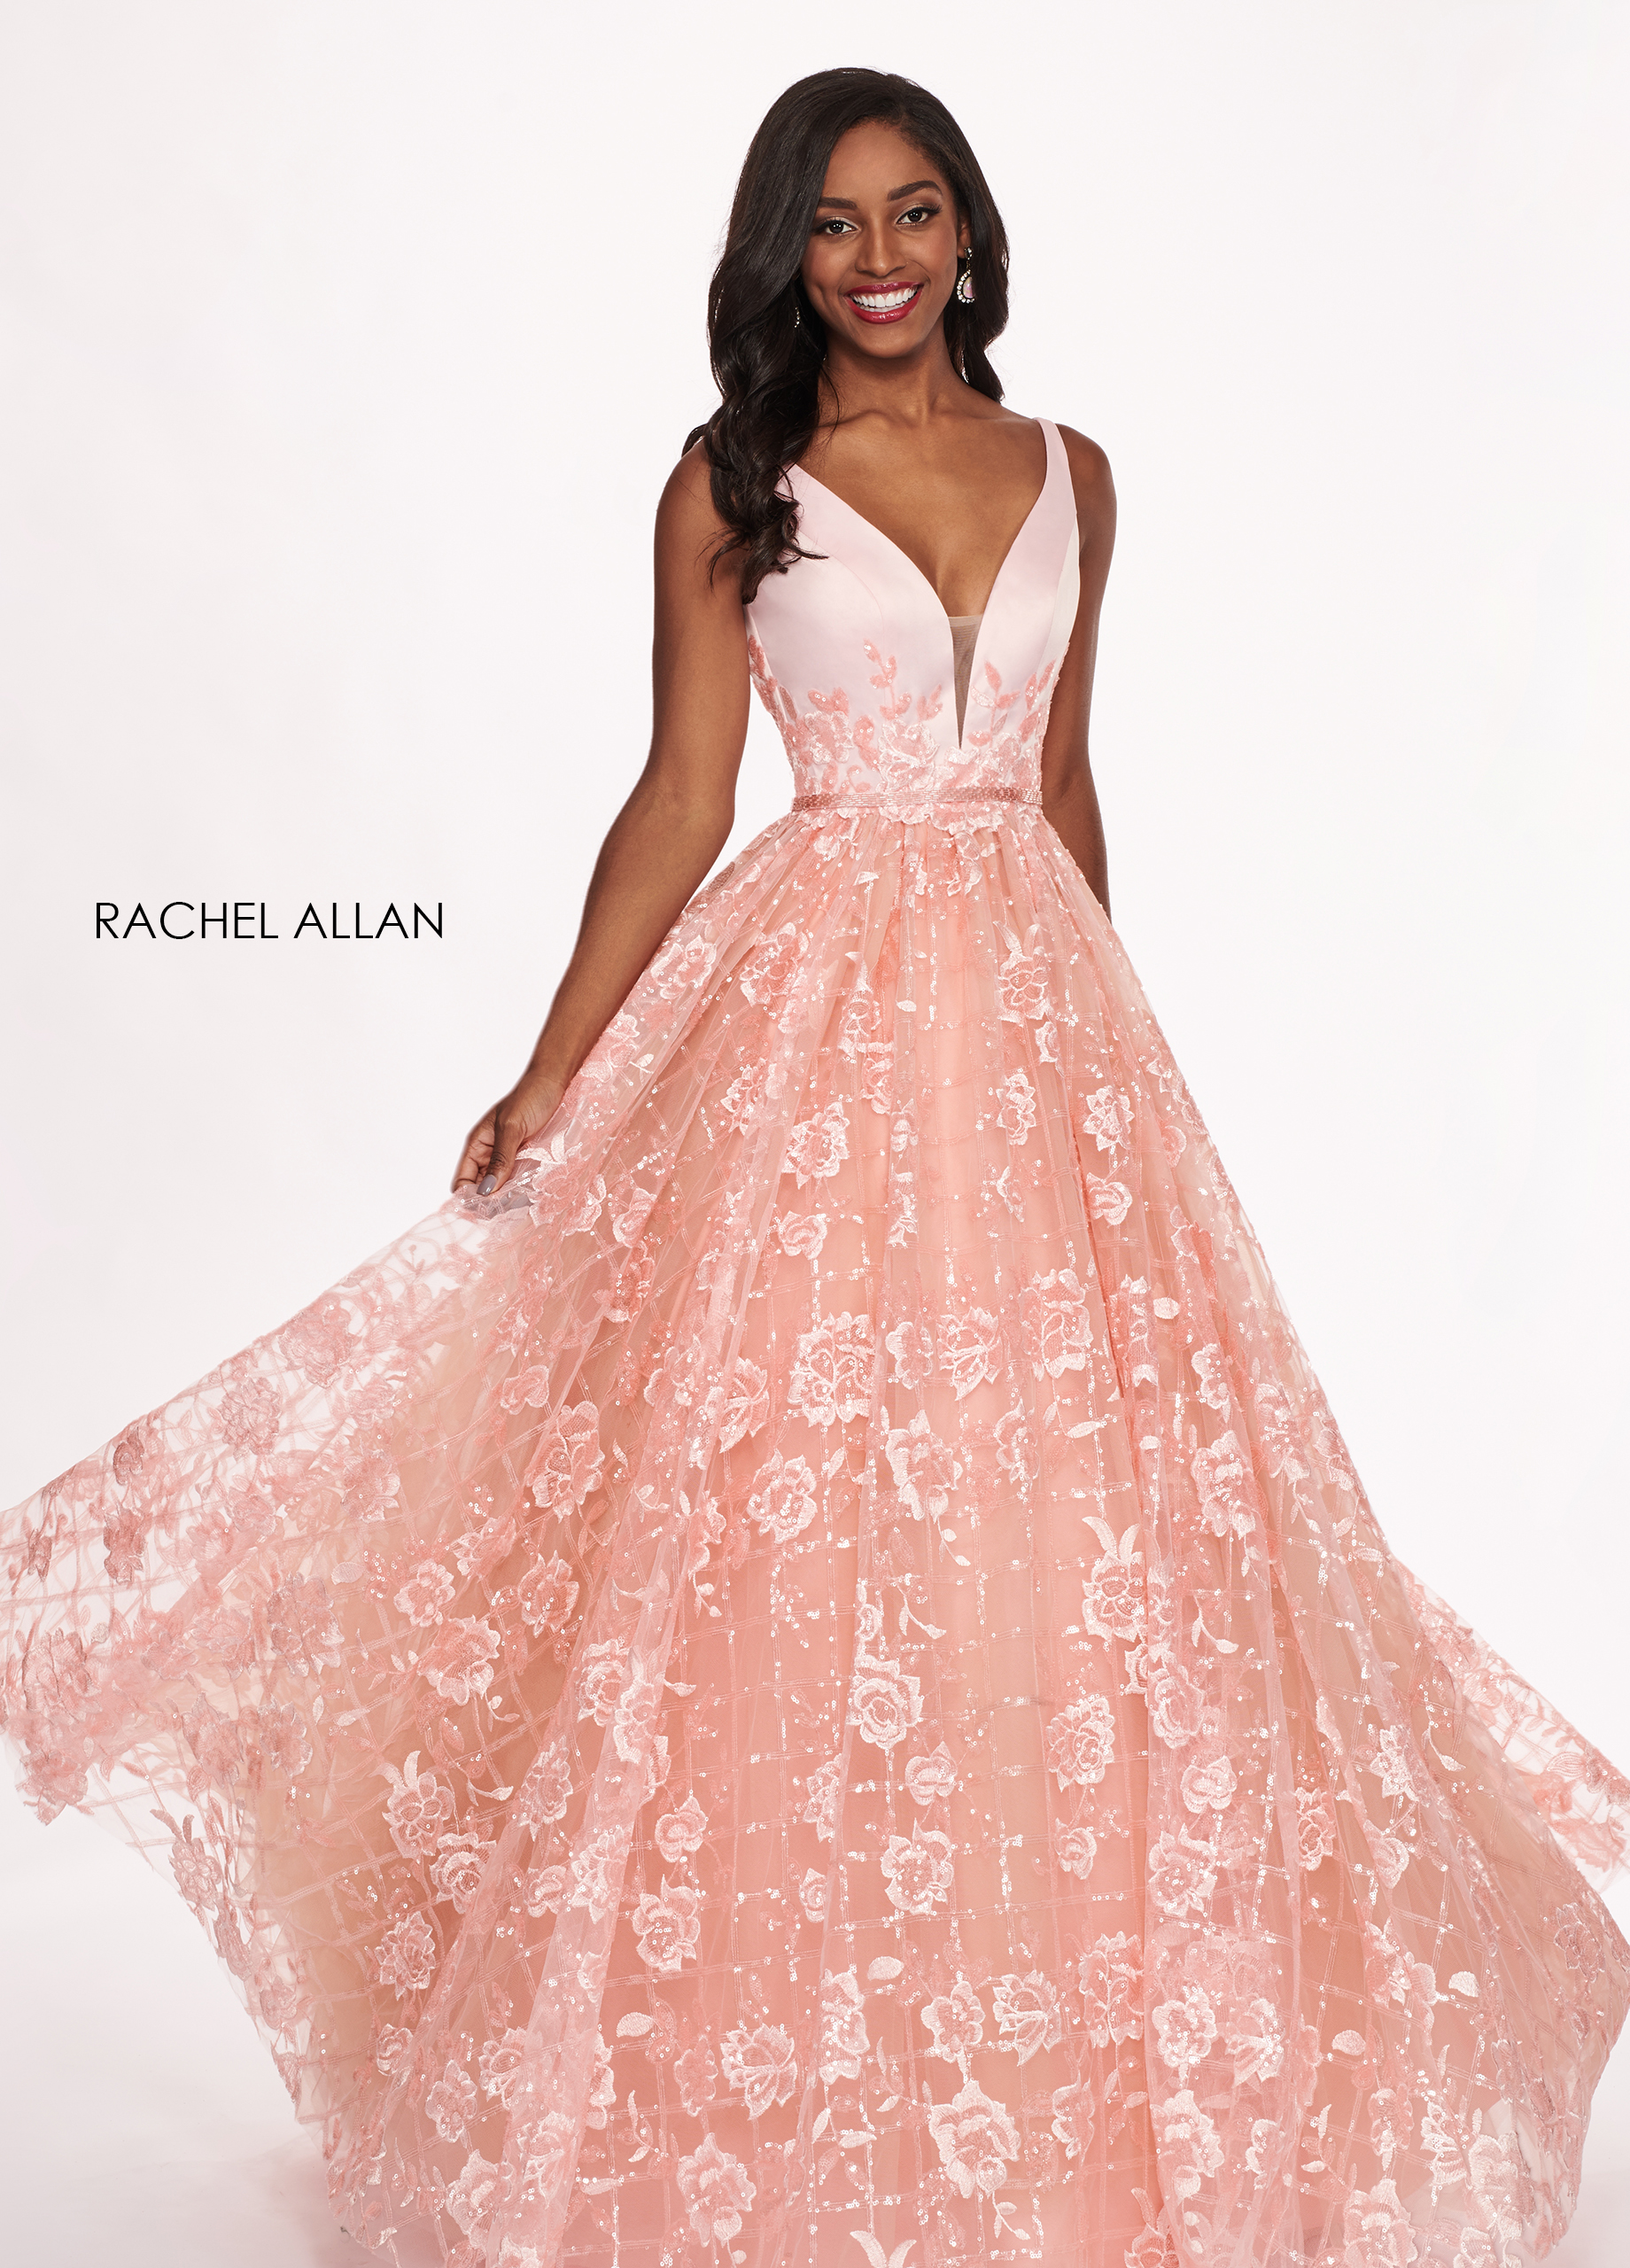 V-Neck Ball Gowns Prom Dresses in Blush Color